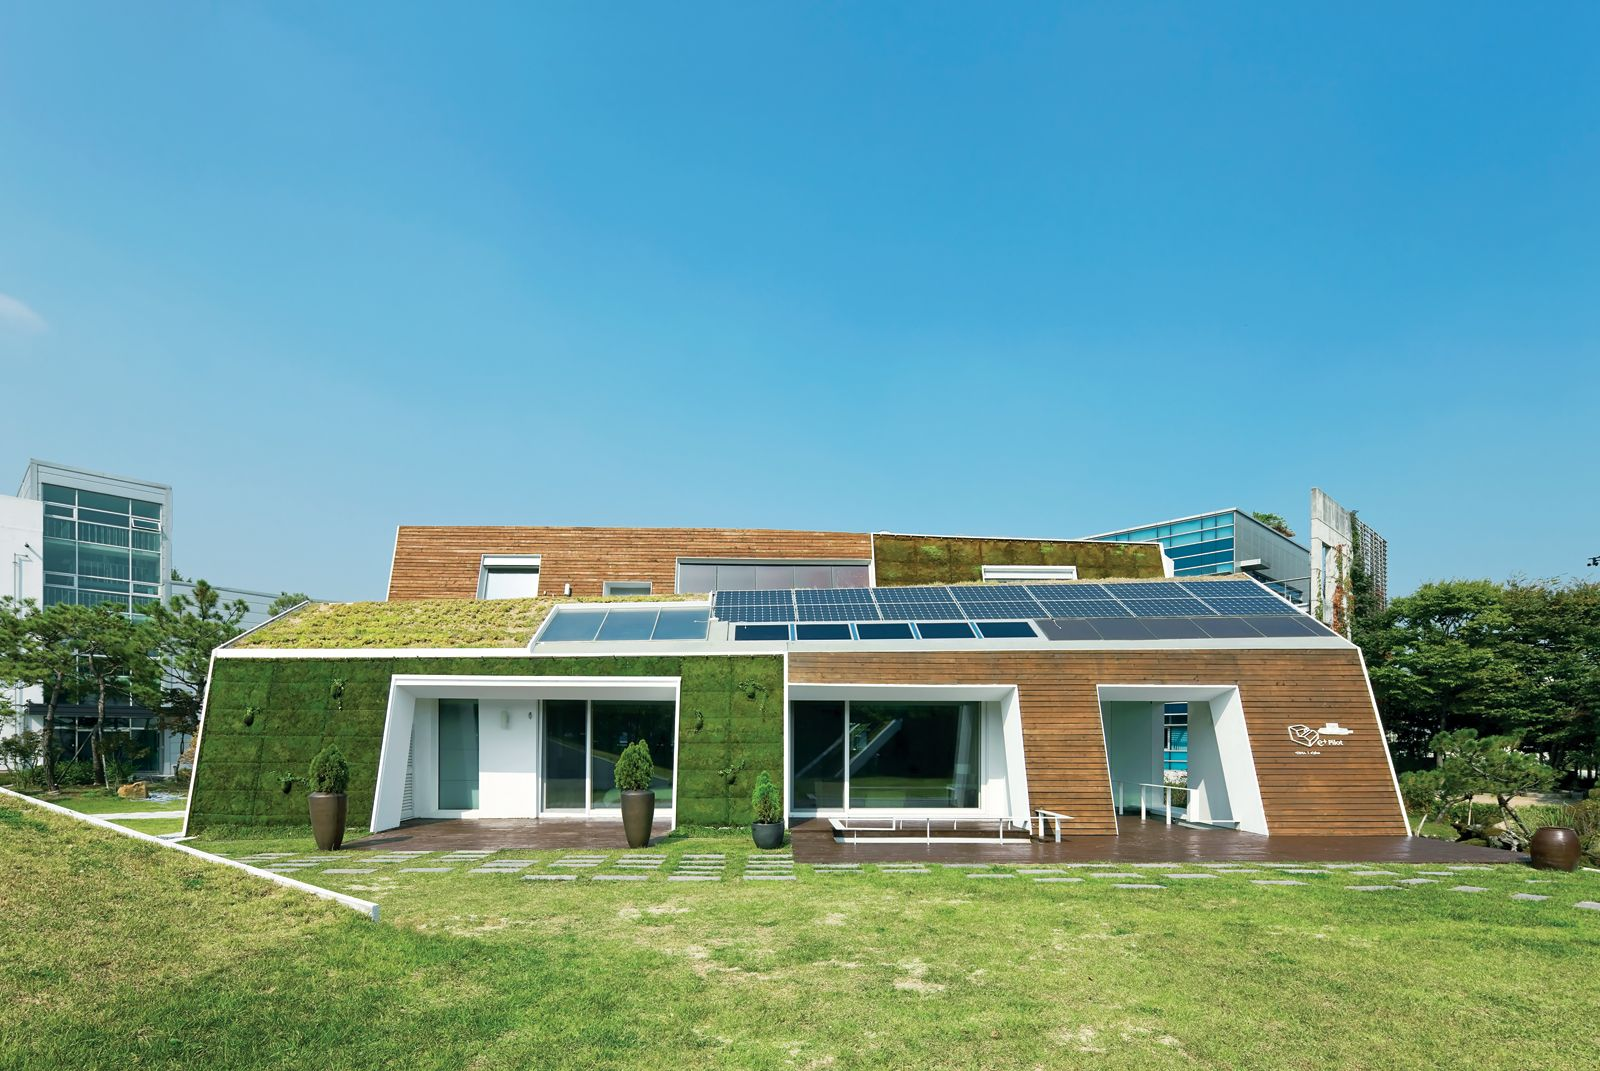 Designing With Grass 7 Green Roofs We Love House Design Sustainable Home Sustainable Architecture